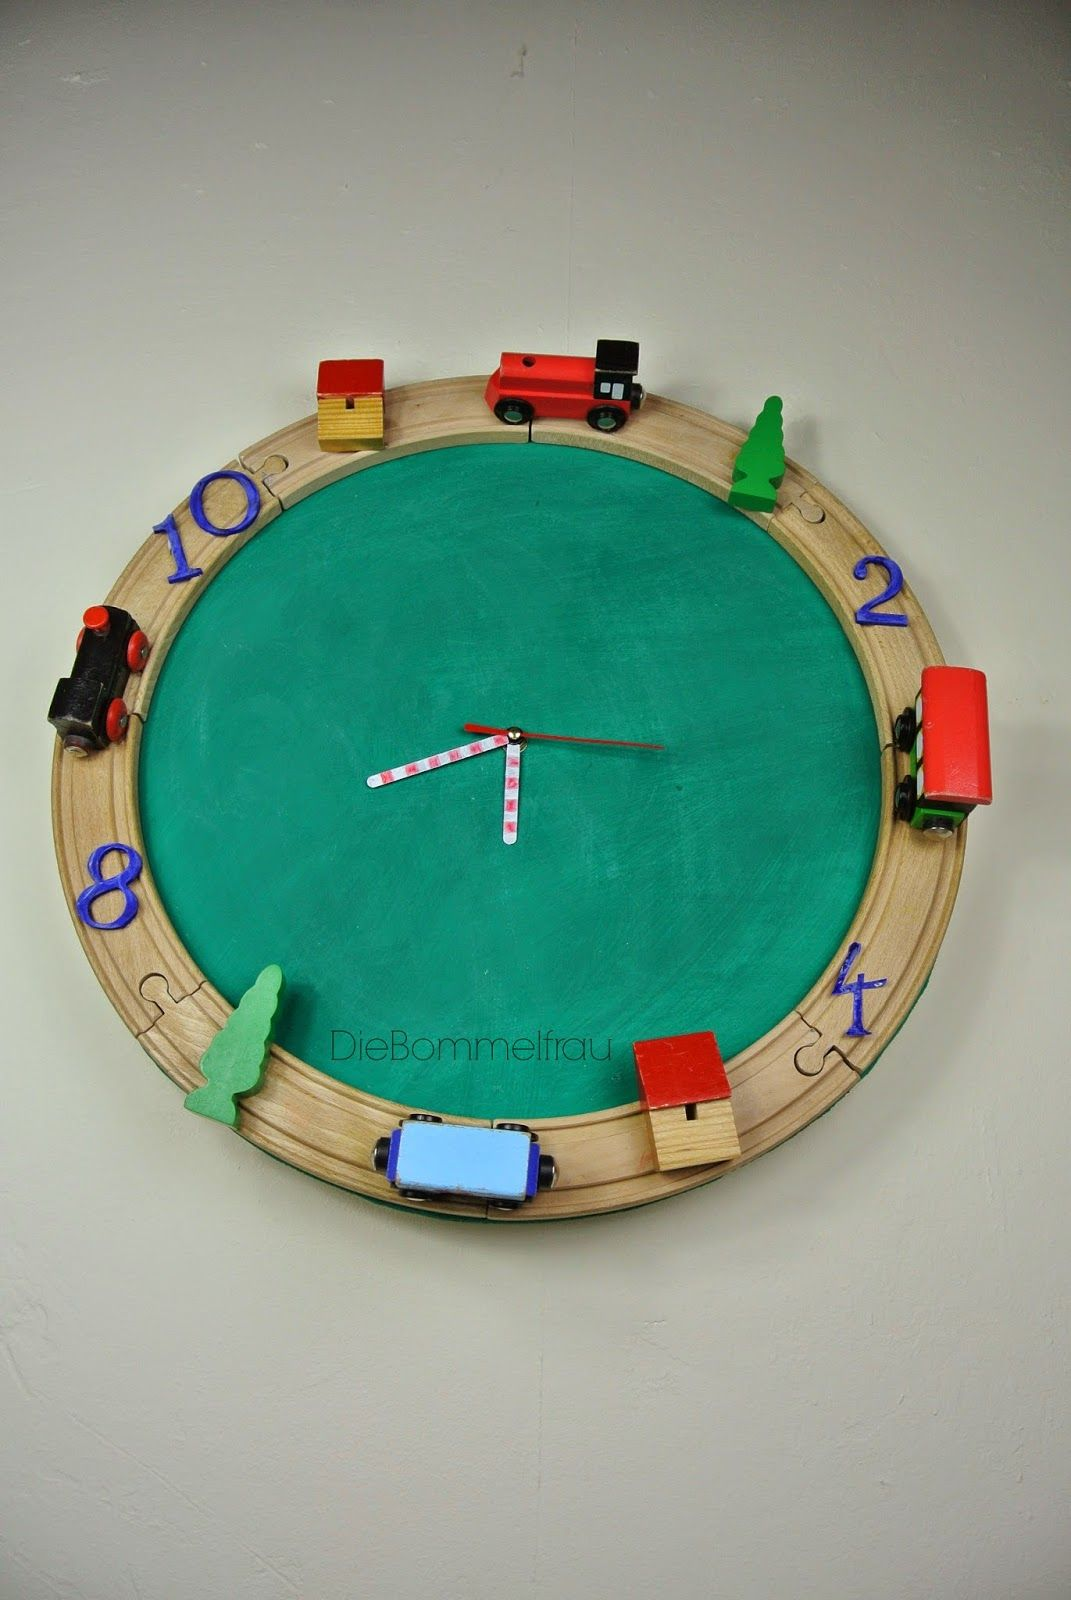 EisenbahnUhr / Clock made with toy train set / Upcycling